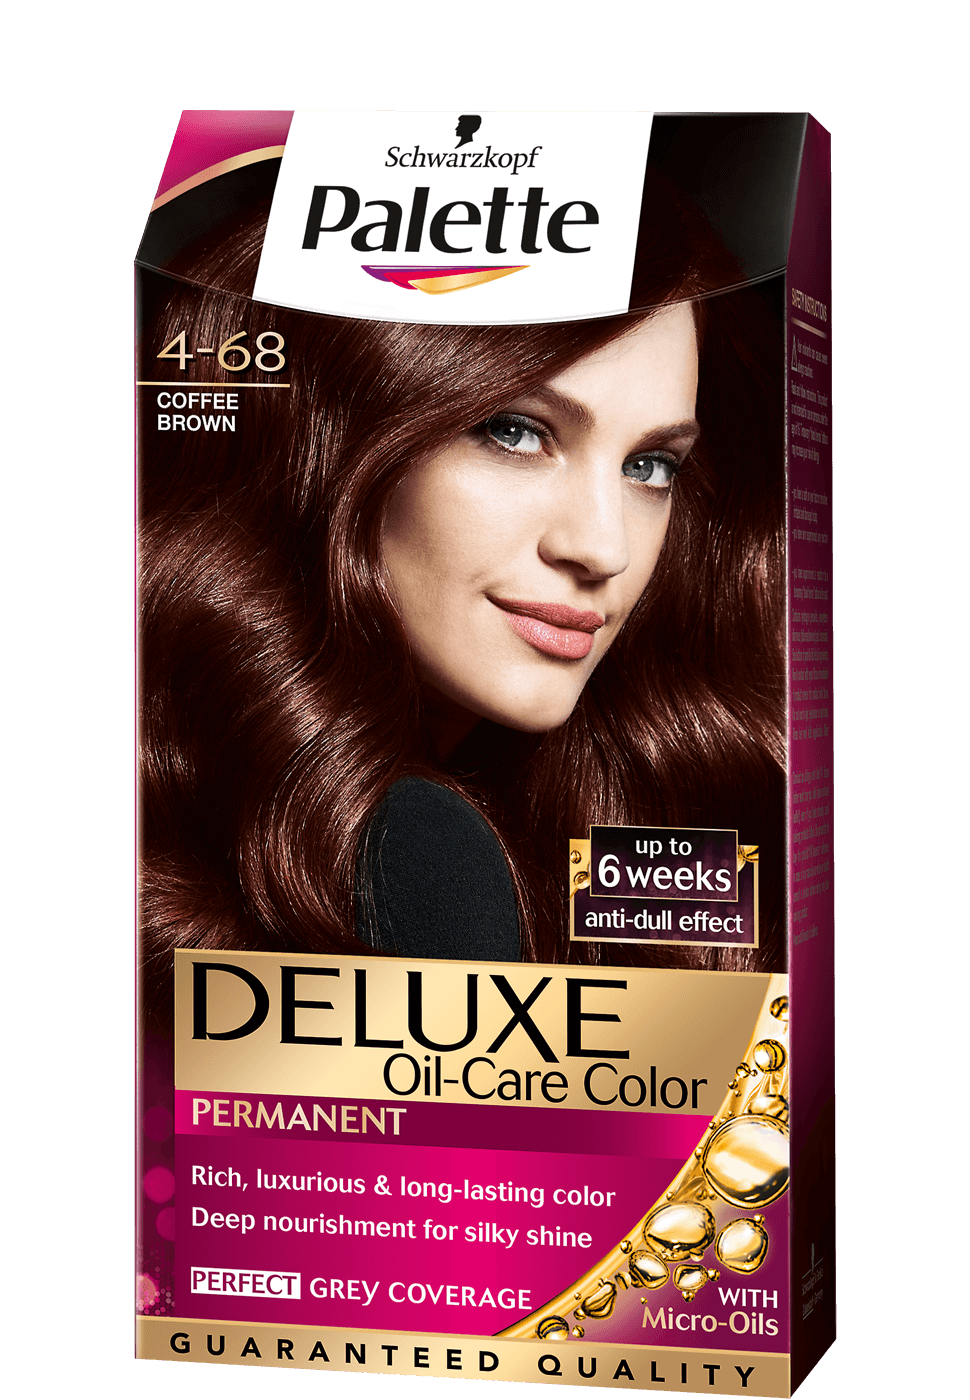 palette_com_deluxe_baseline_4-68_coffee_brown_970x1400